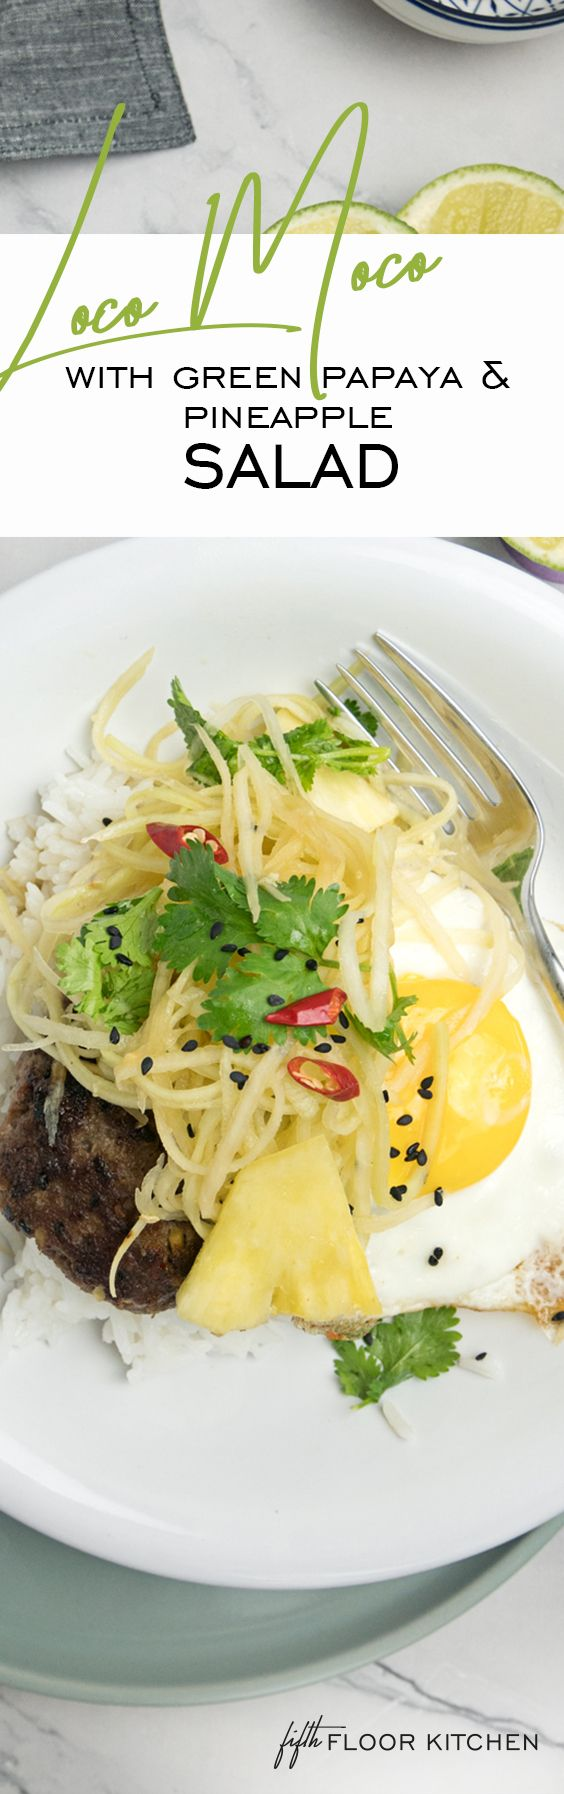 My healthy style loco moco will send you on a little holiday to Hawaii. This fresh and healthy style loco moco is with jasmine rice, a spicy burger patty, some fresh green papaya and pineapple salad, of course a fried egg sunny side up and a delicious sesame ginger dressing.